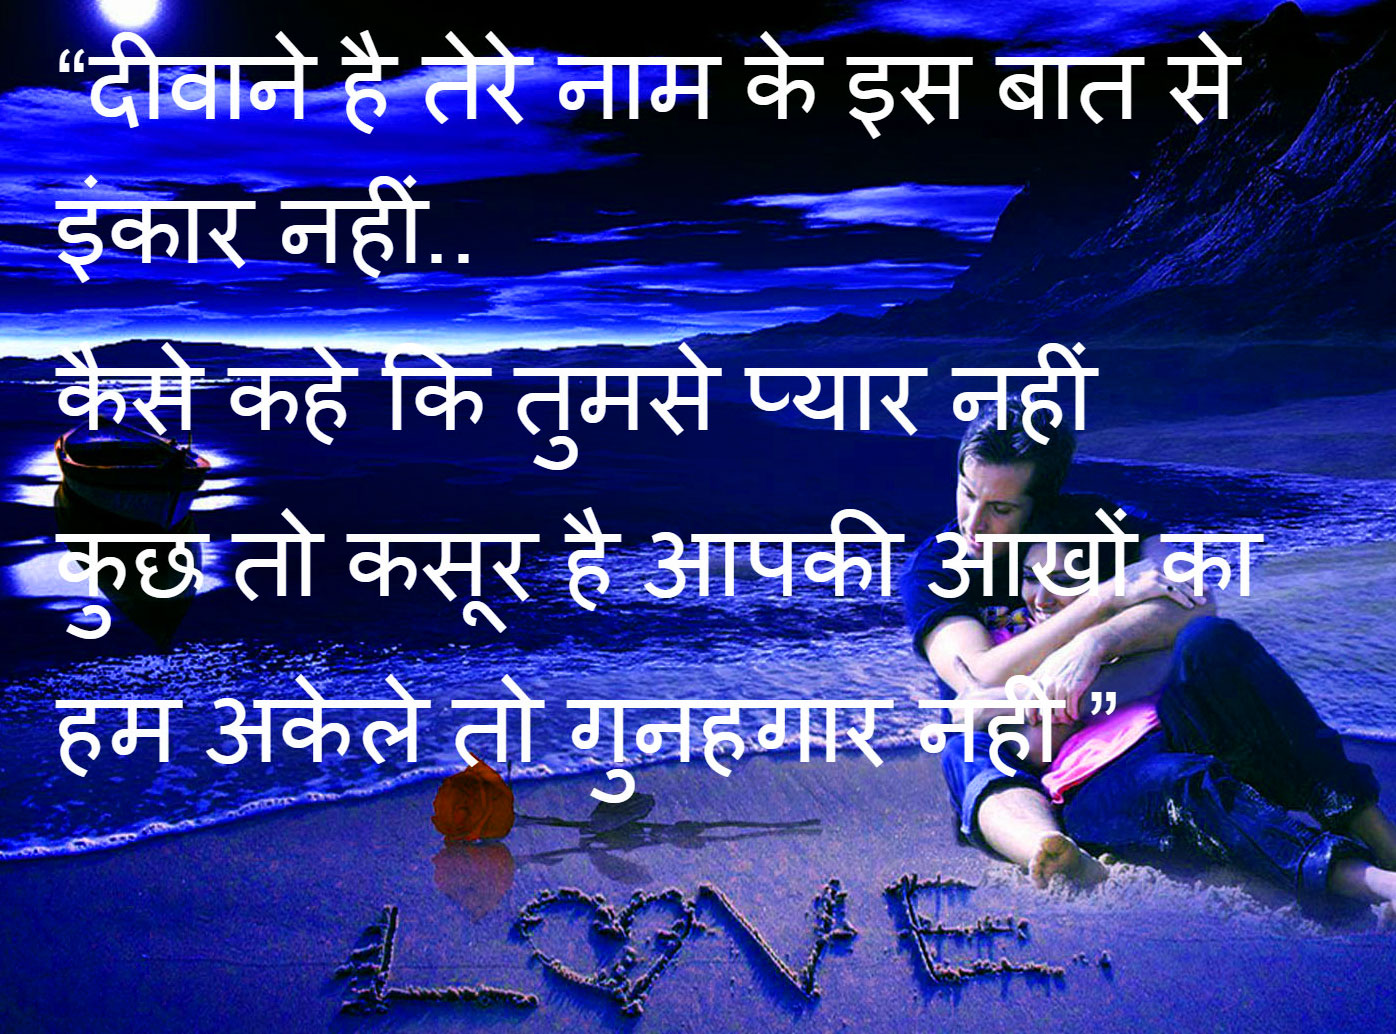 Hindi-Bewafa-Shayari-Images-48